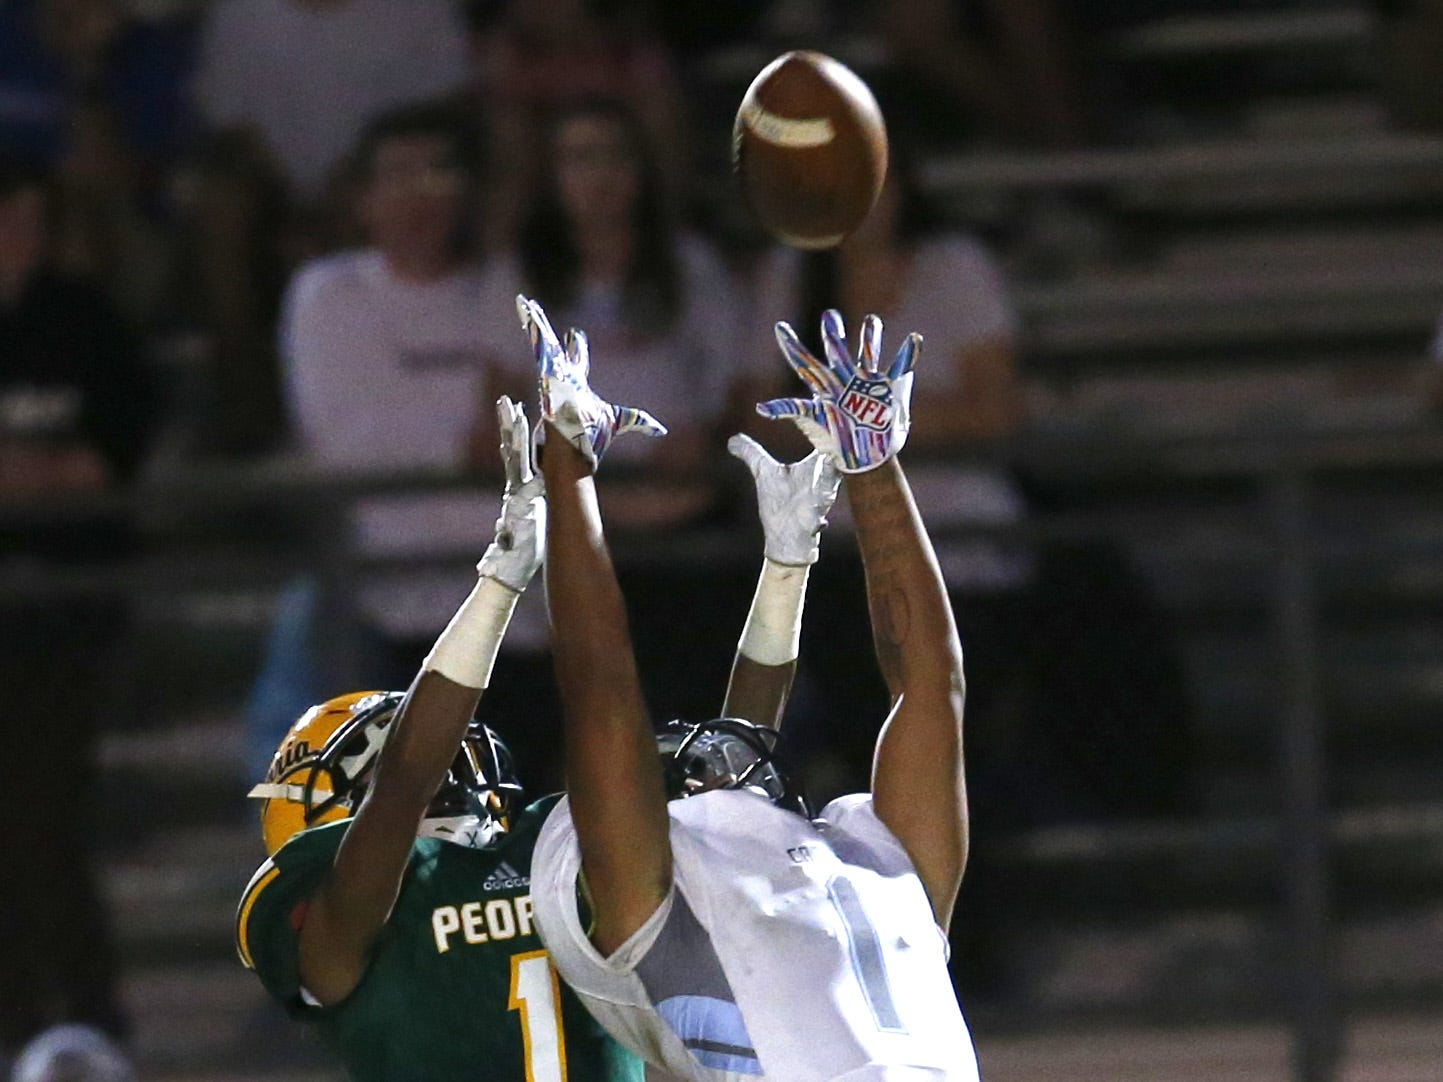 Cactus' Rylee Williams (1) breaks up a pass intended for Peoria's Jovon Scott (1) during a football game at Peoria High on October 26. #azhsfb